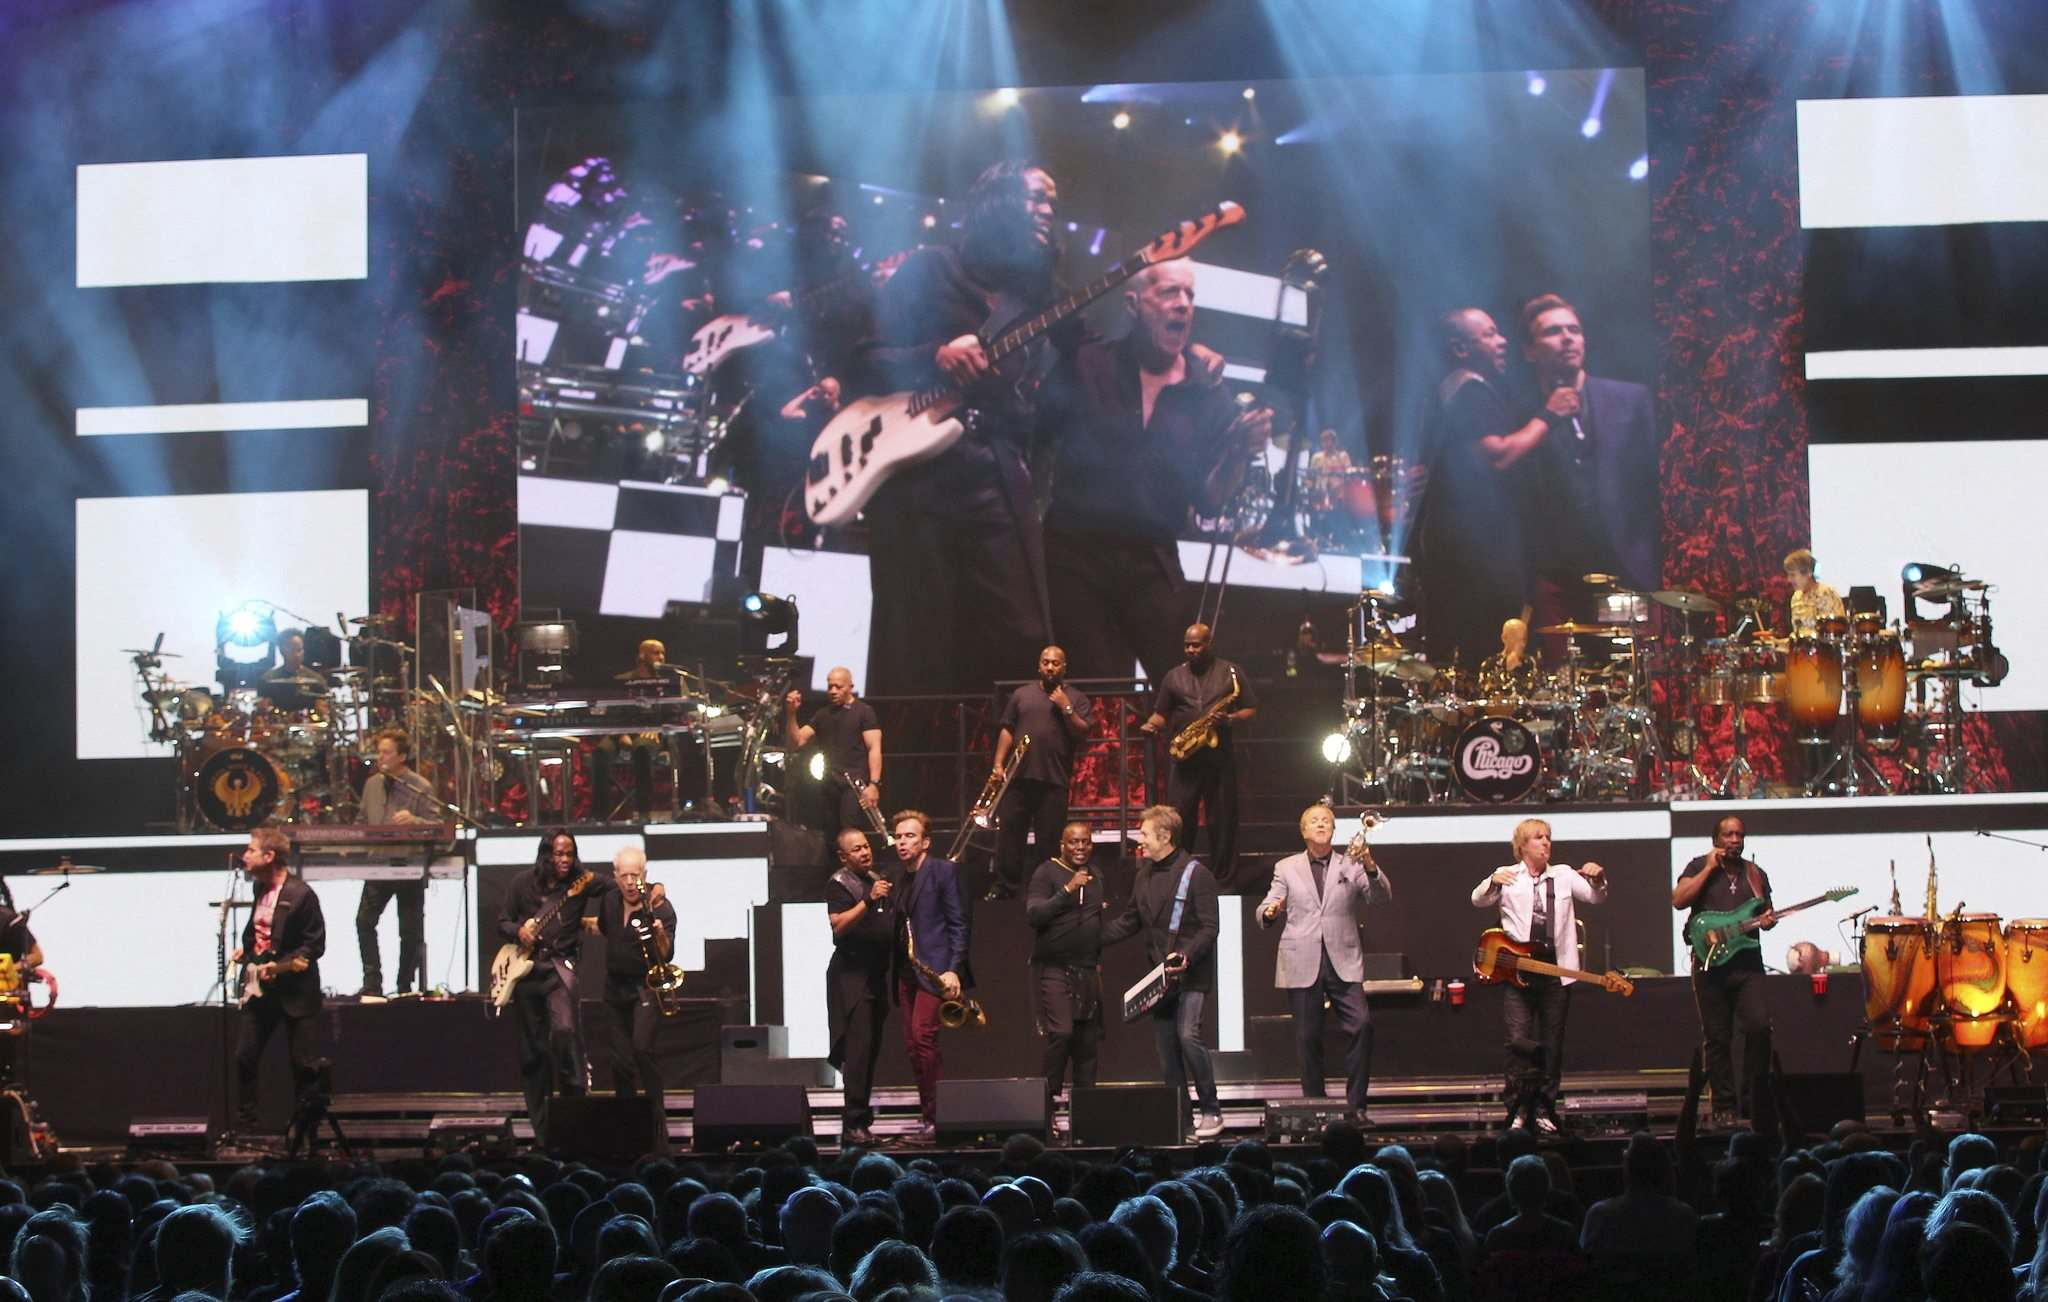 JOE BRYKSA / WINNIPEG FREE PRESS</p><p>Earth Wind and Fire and Chicago, with almost 200 million records sold between them, see 21 musicians onstage when the bands combine.</p></p>